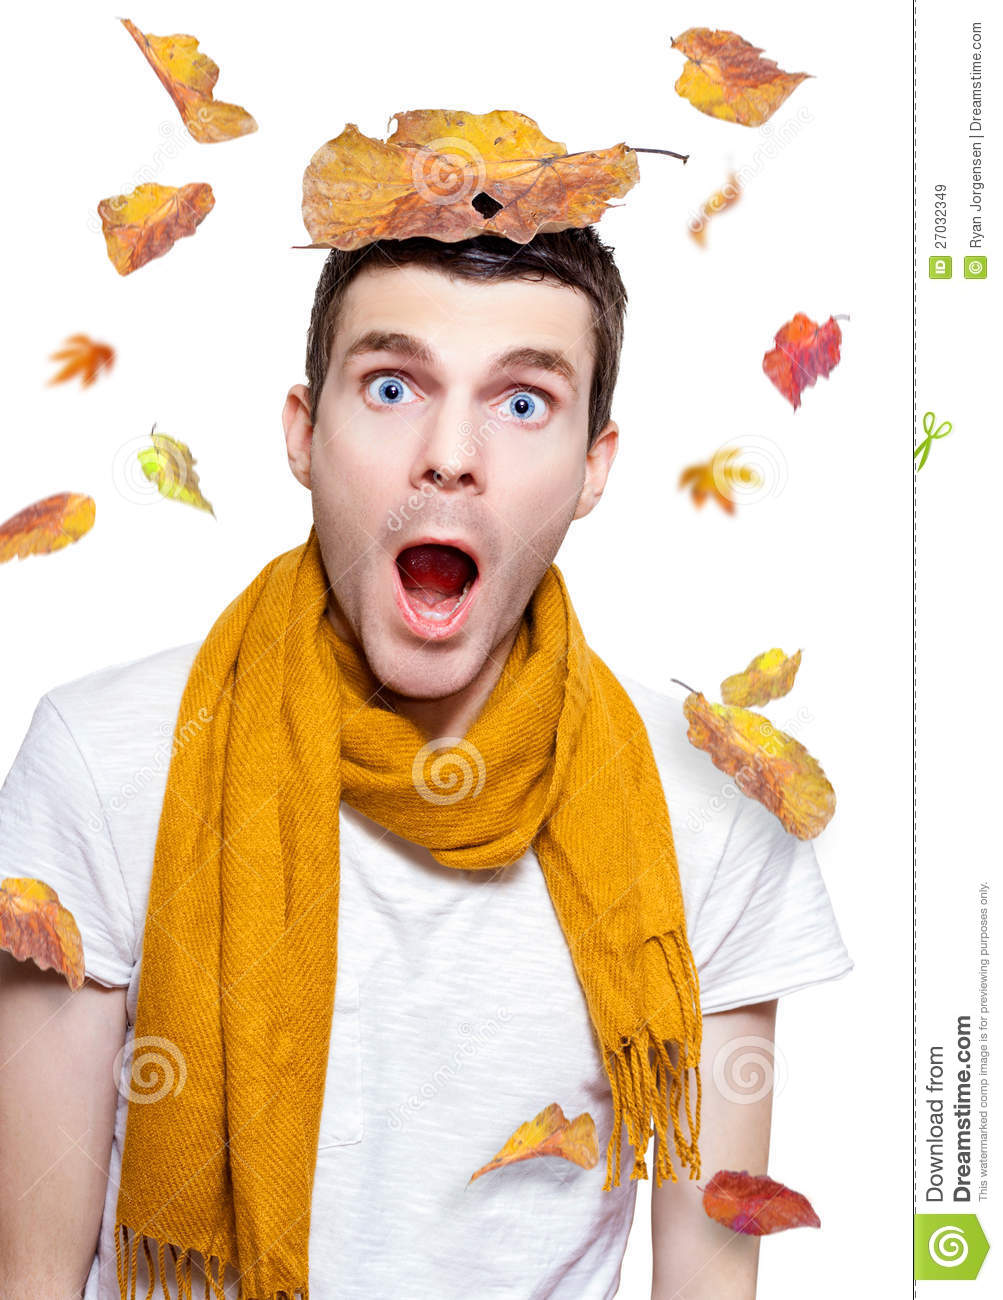 Surprised Person Having Fun With Tree Leaf On Head Royalty Free Stock ...